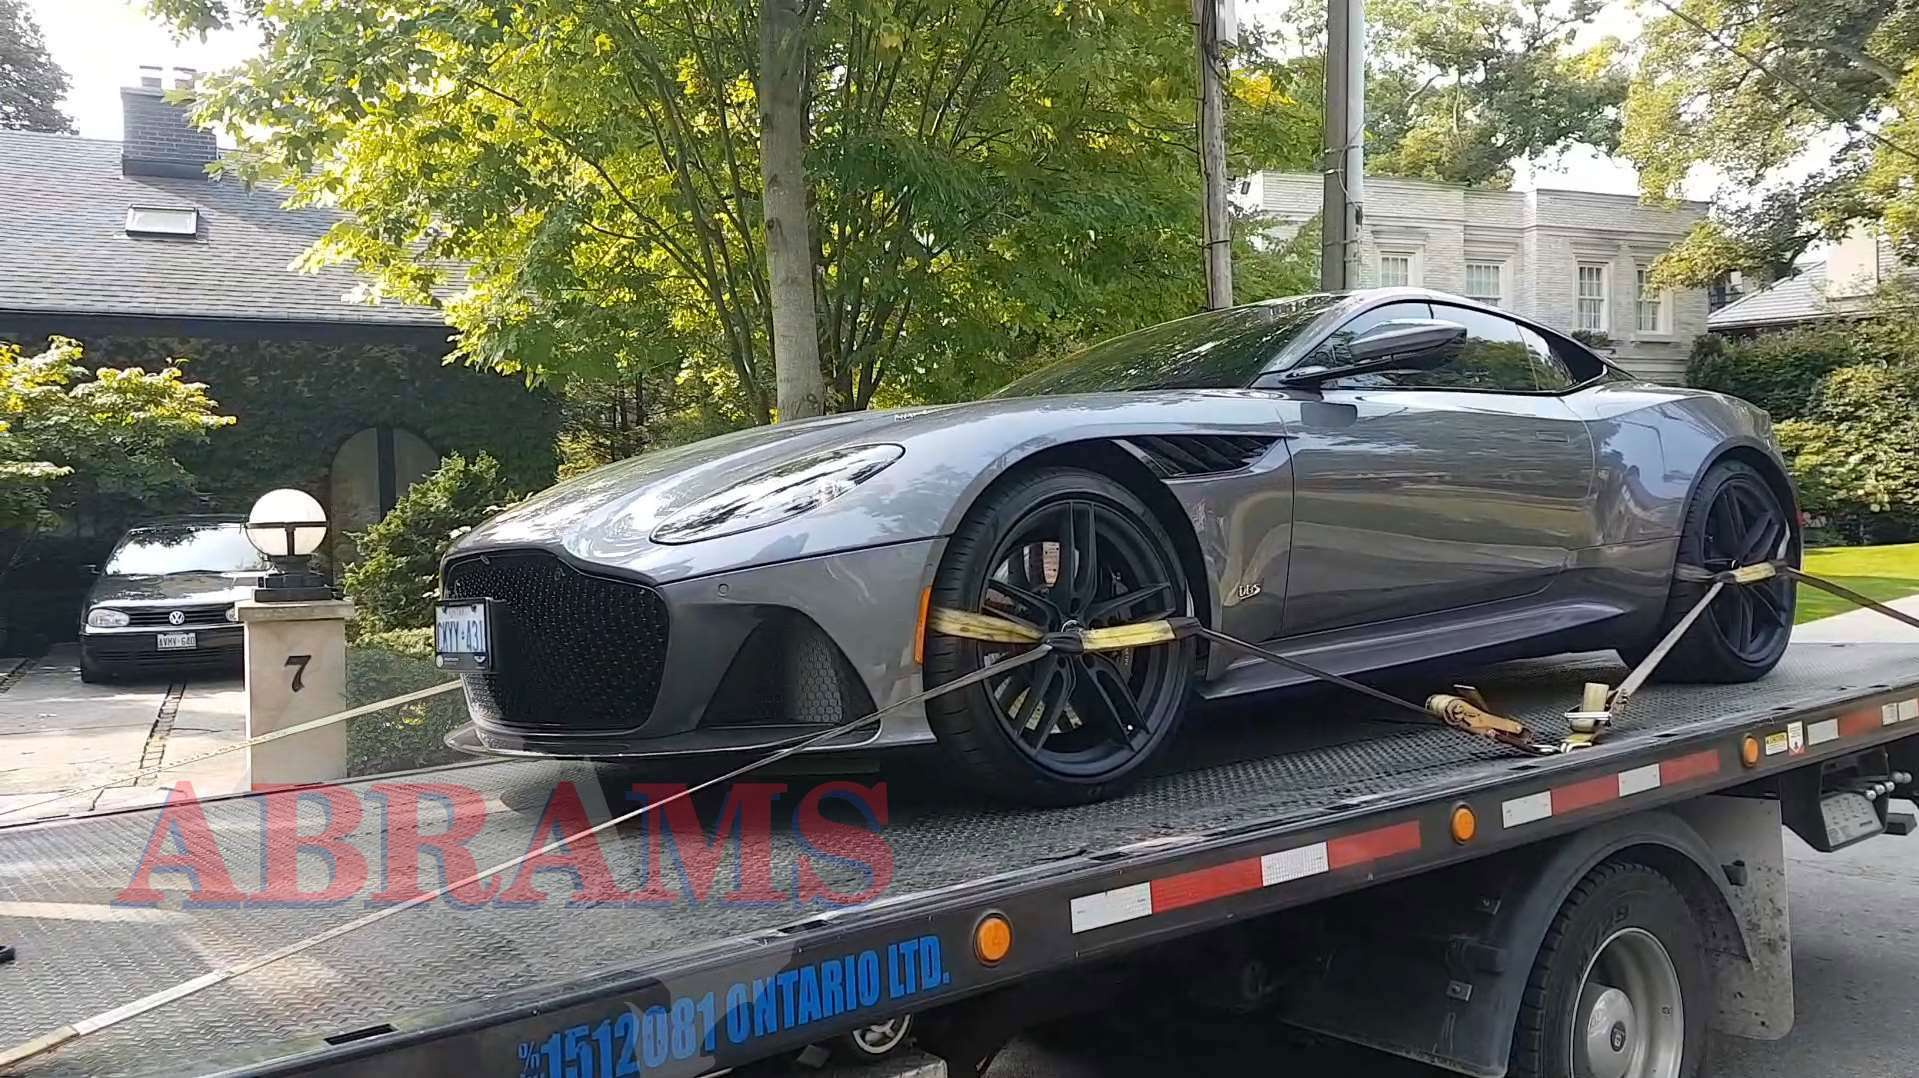 Towing an Aston Martin and securing the wheels using tow straps